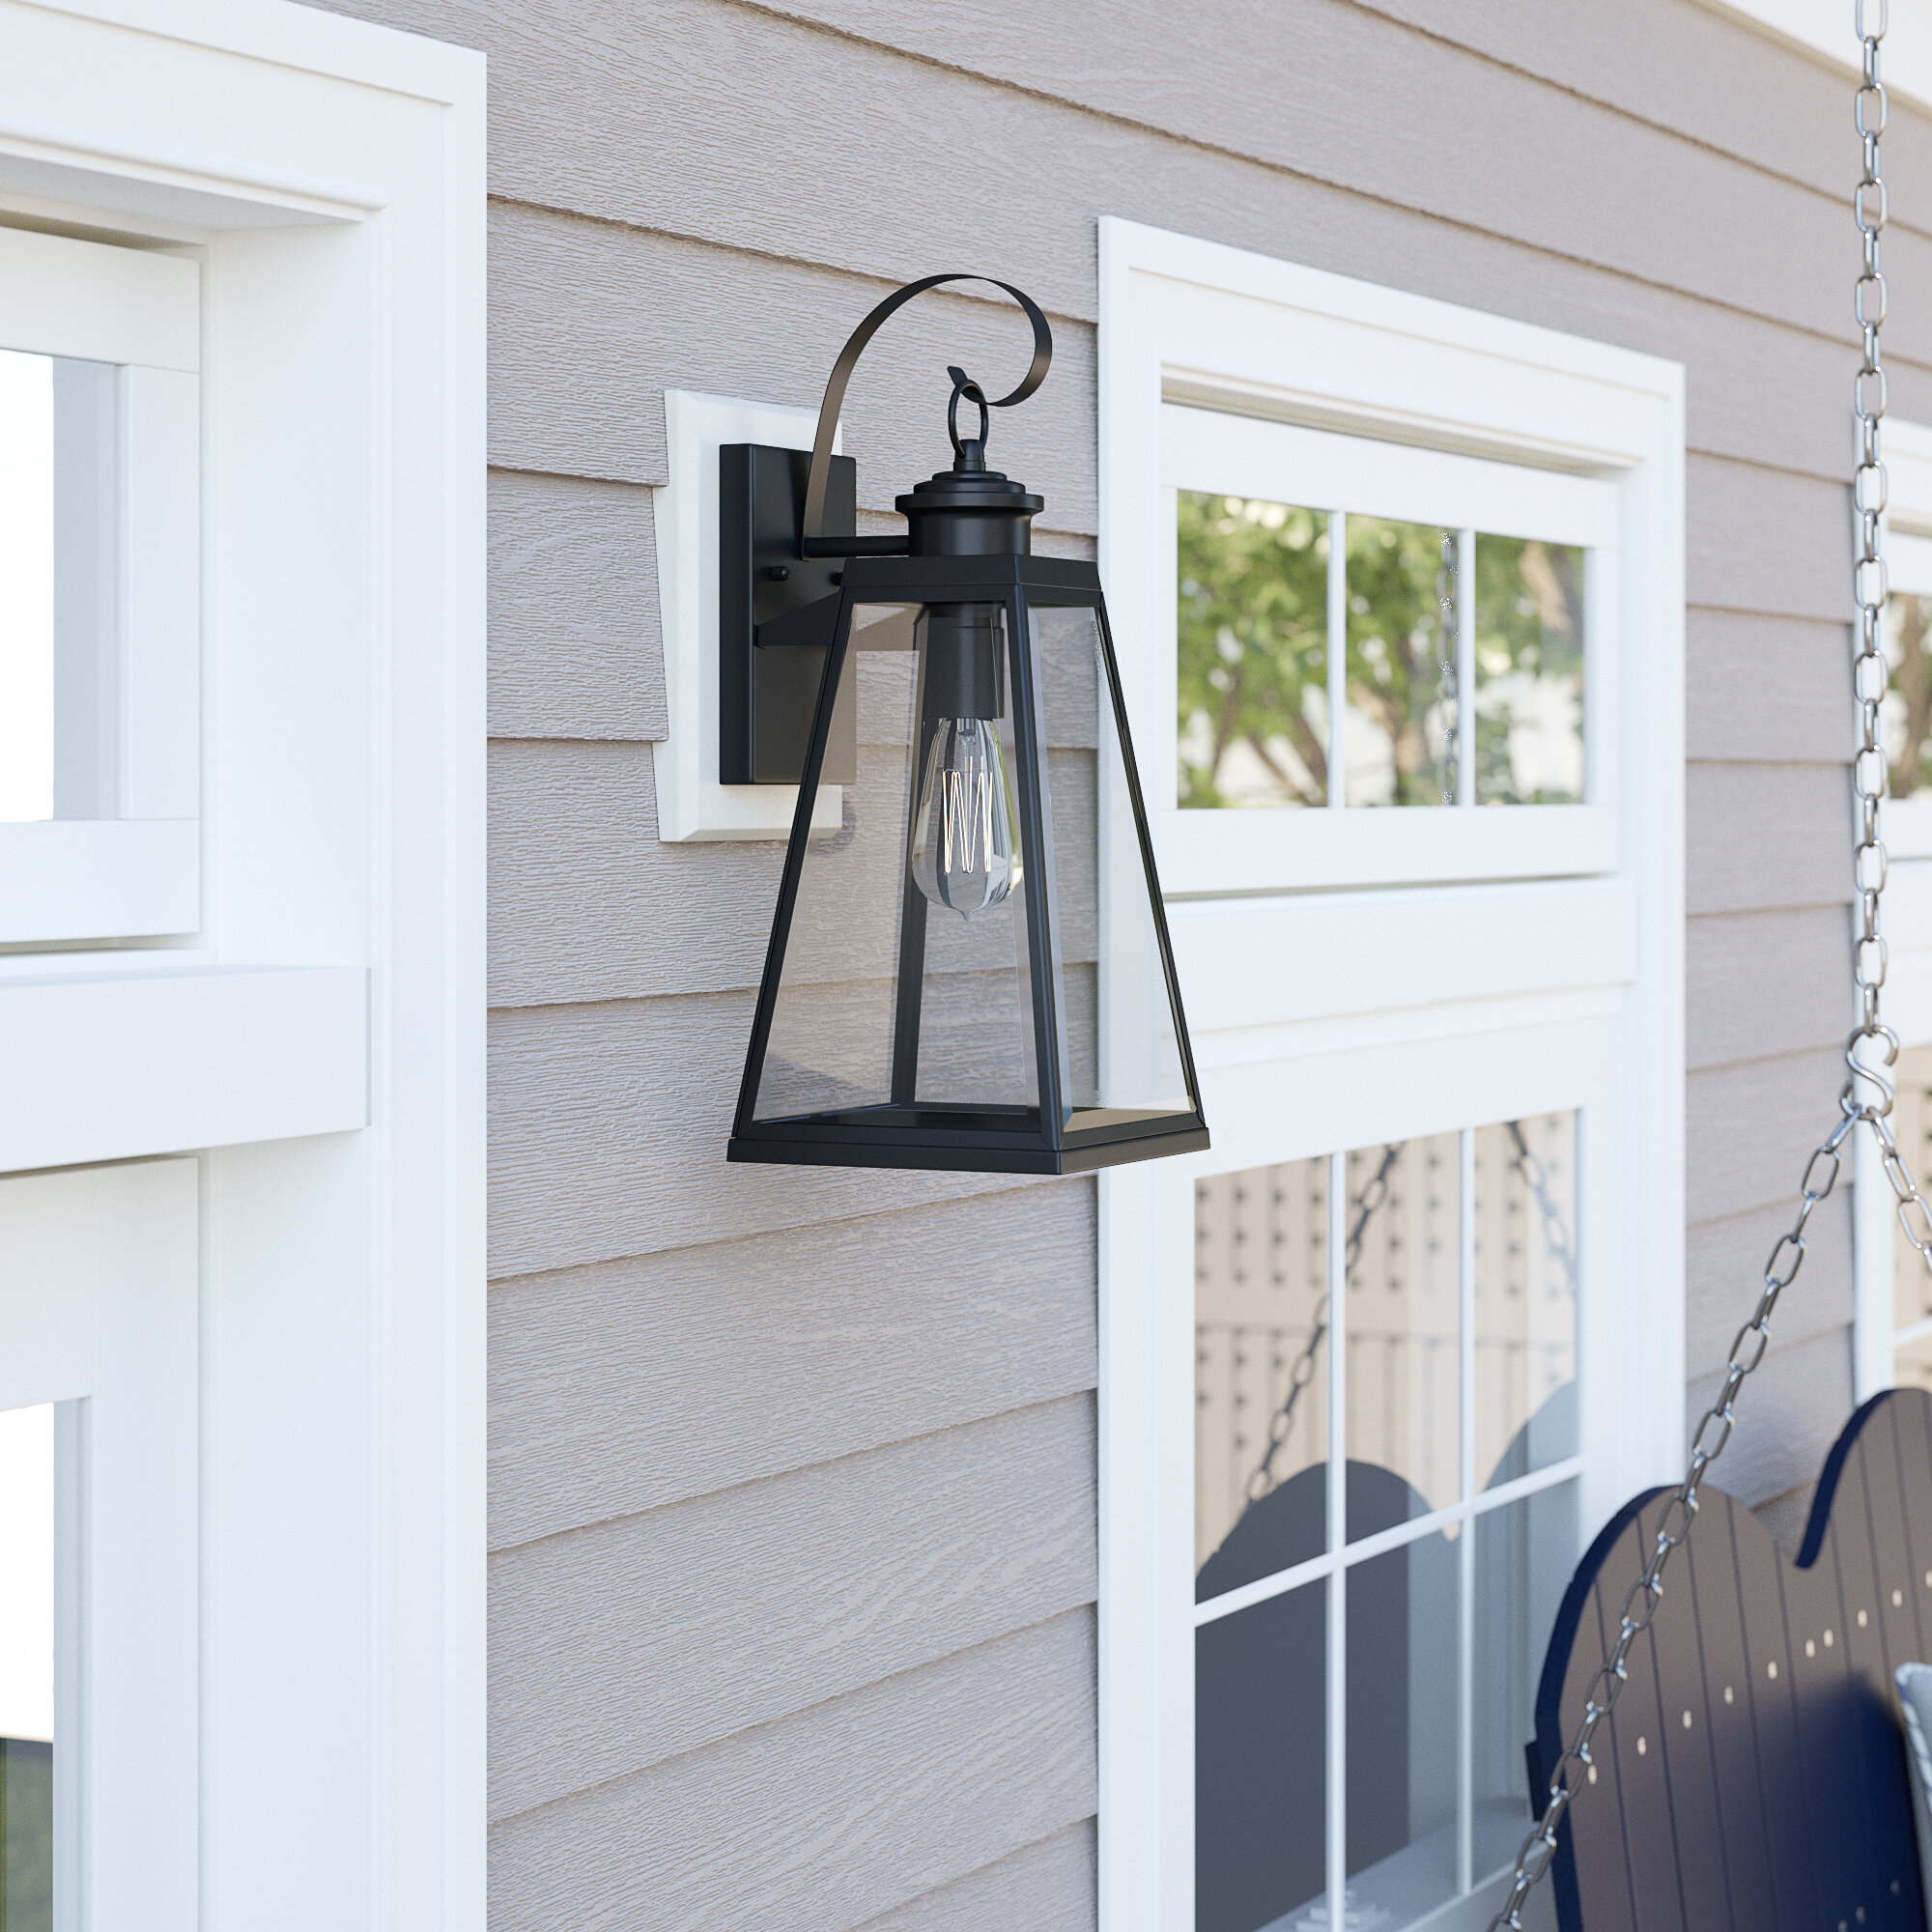 Cottage Country Outdoor Wall Lighting Free Shipping Over 35 Wayfair